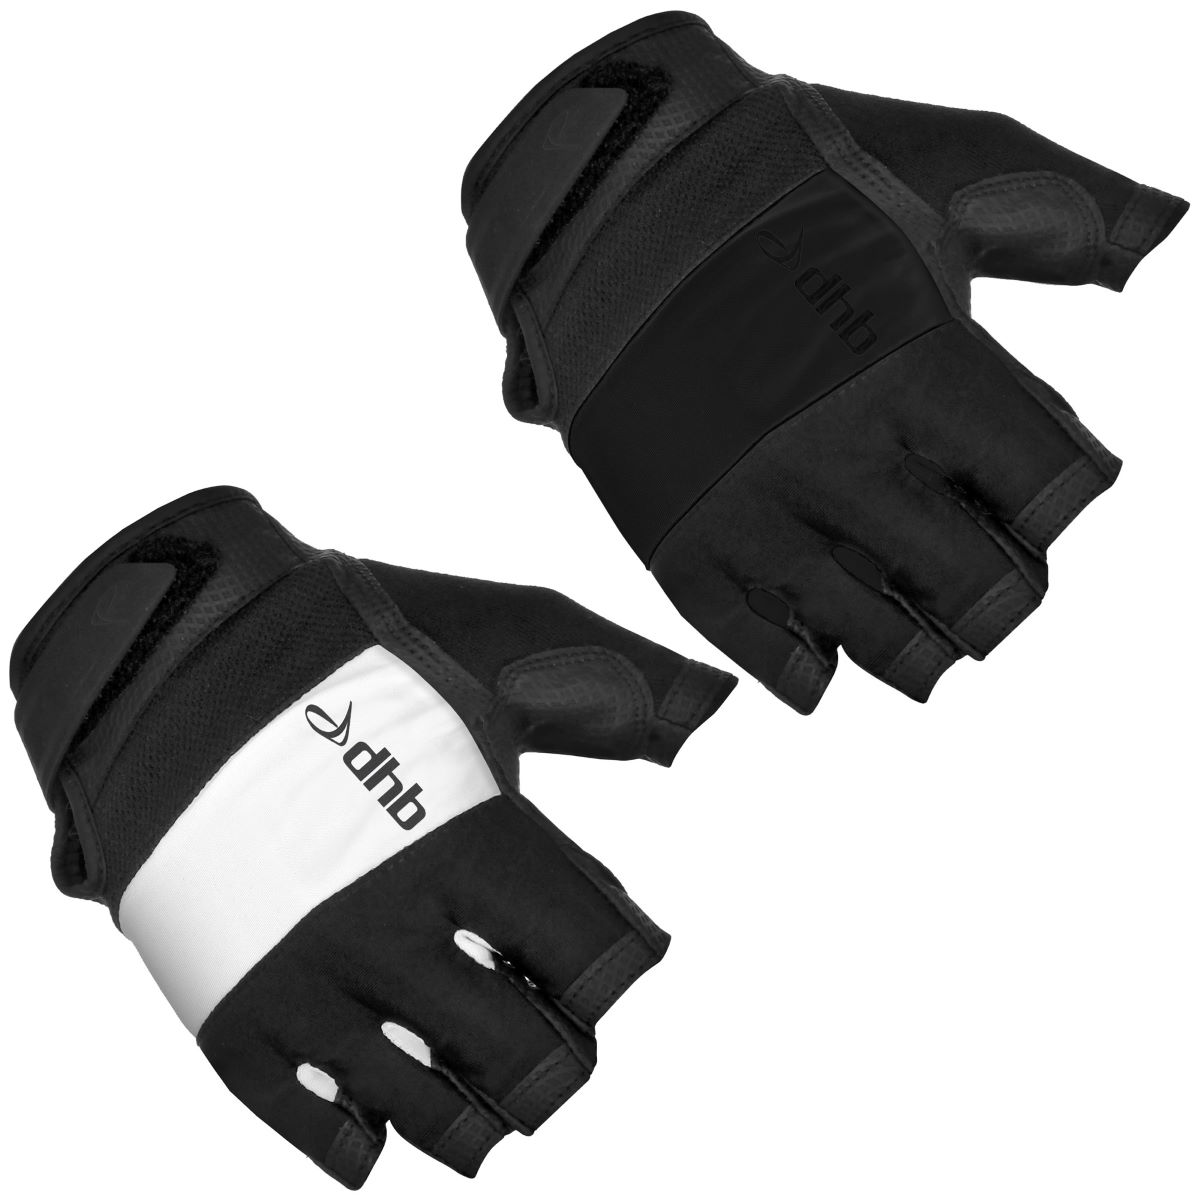 dhb Short Finger Summer Gloves